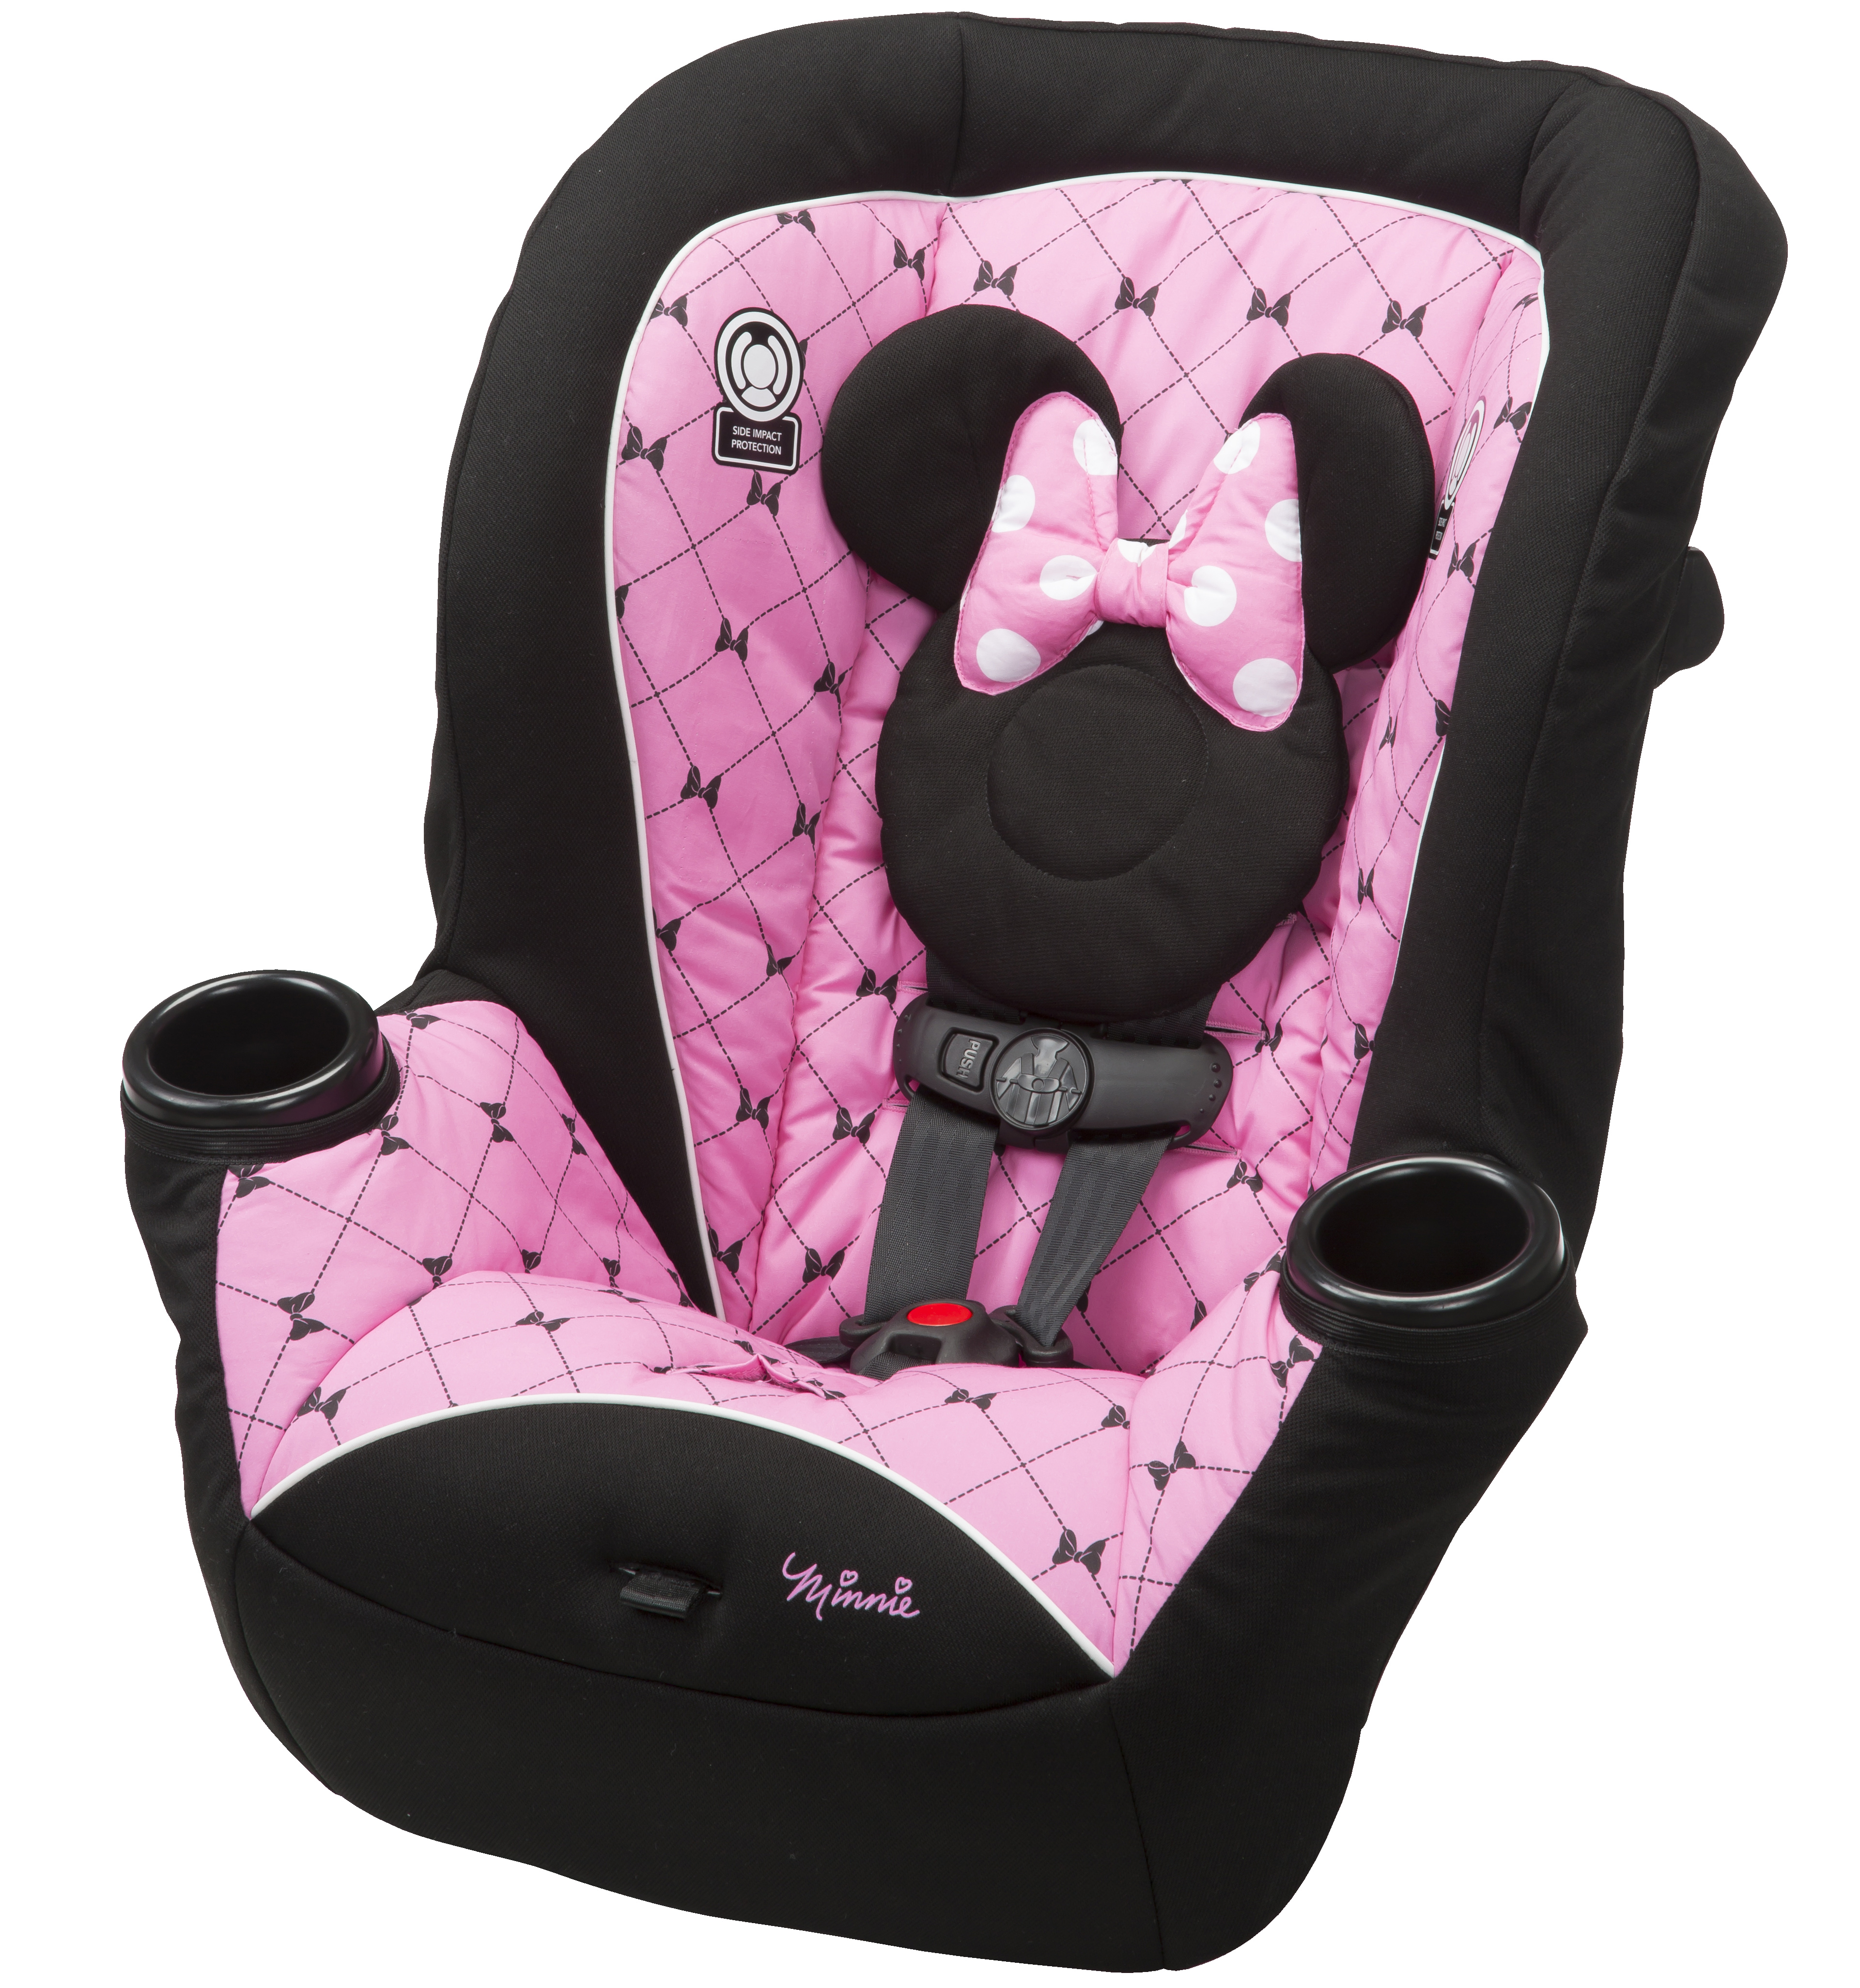 Disney Baby Apt 40RF Convertible Car Seat, Kriss Kross Minnie